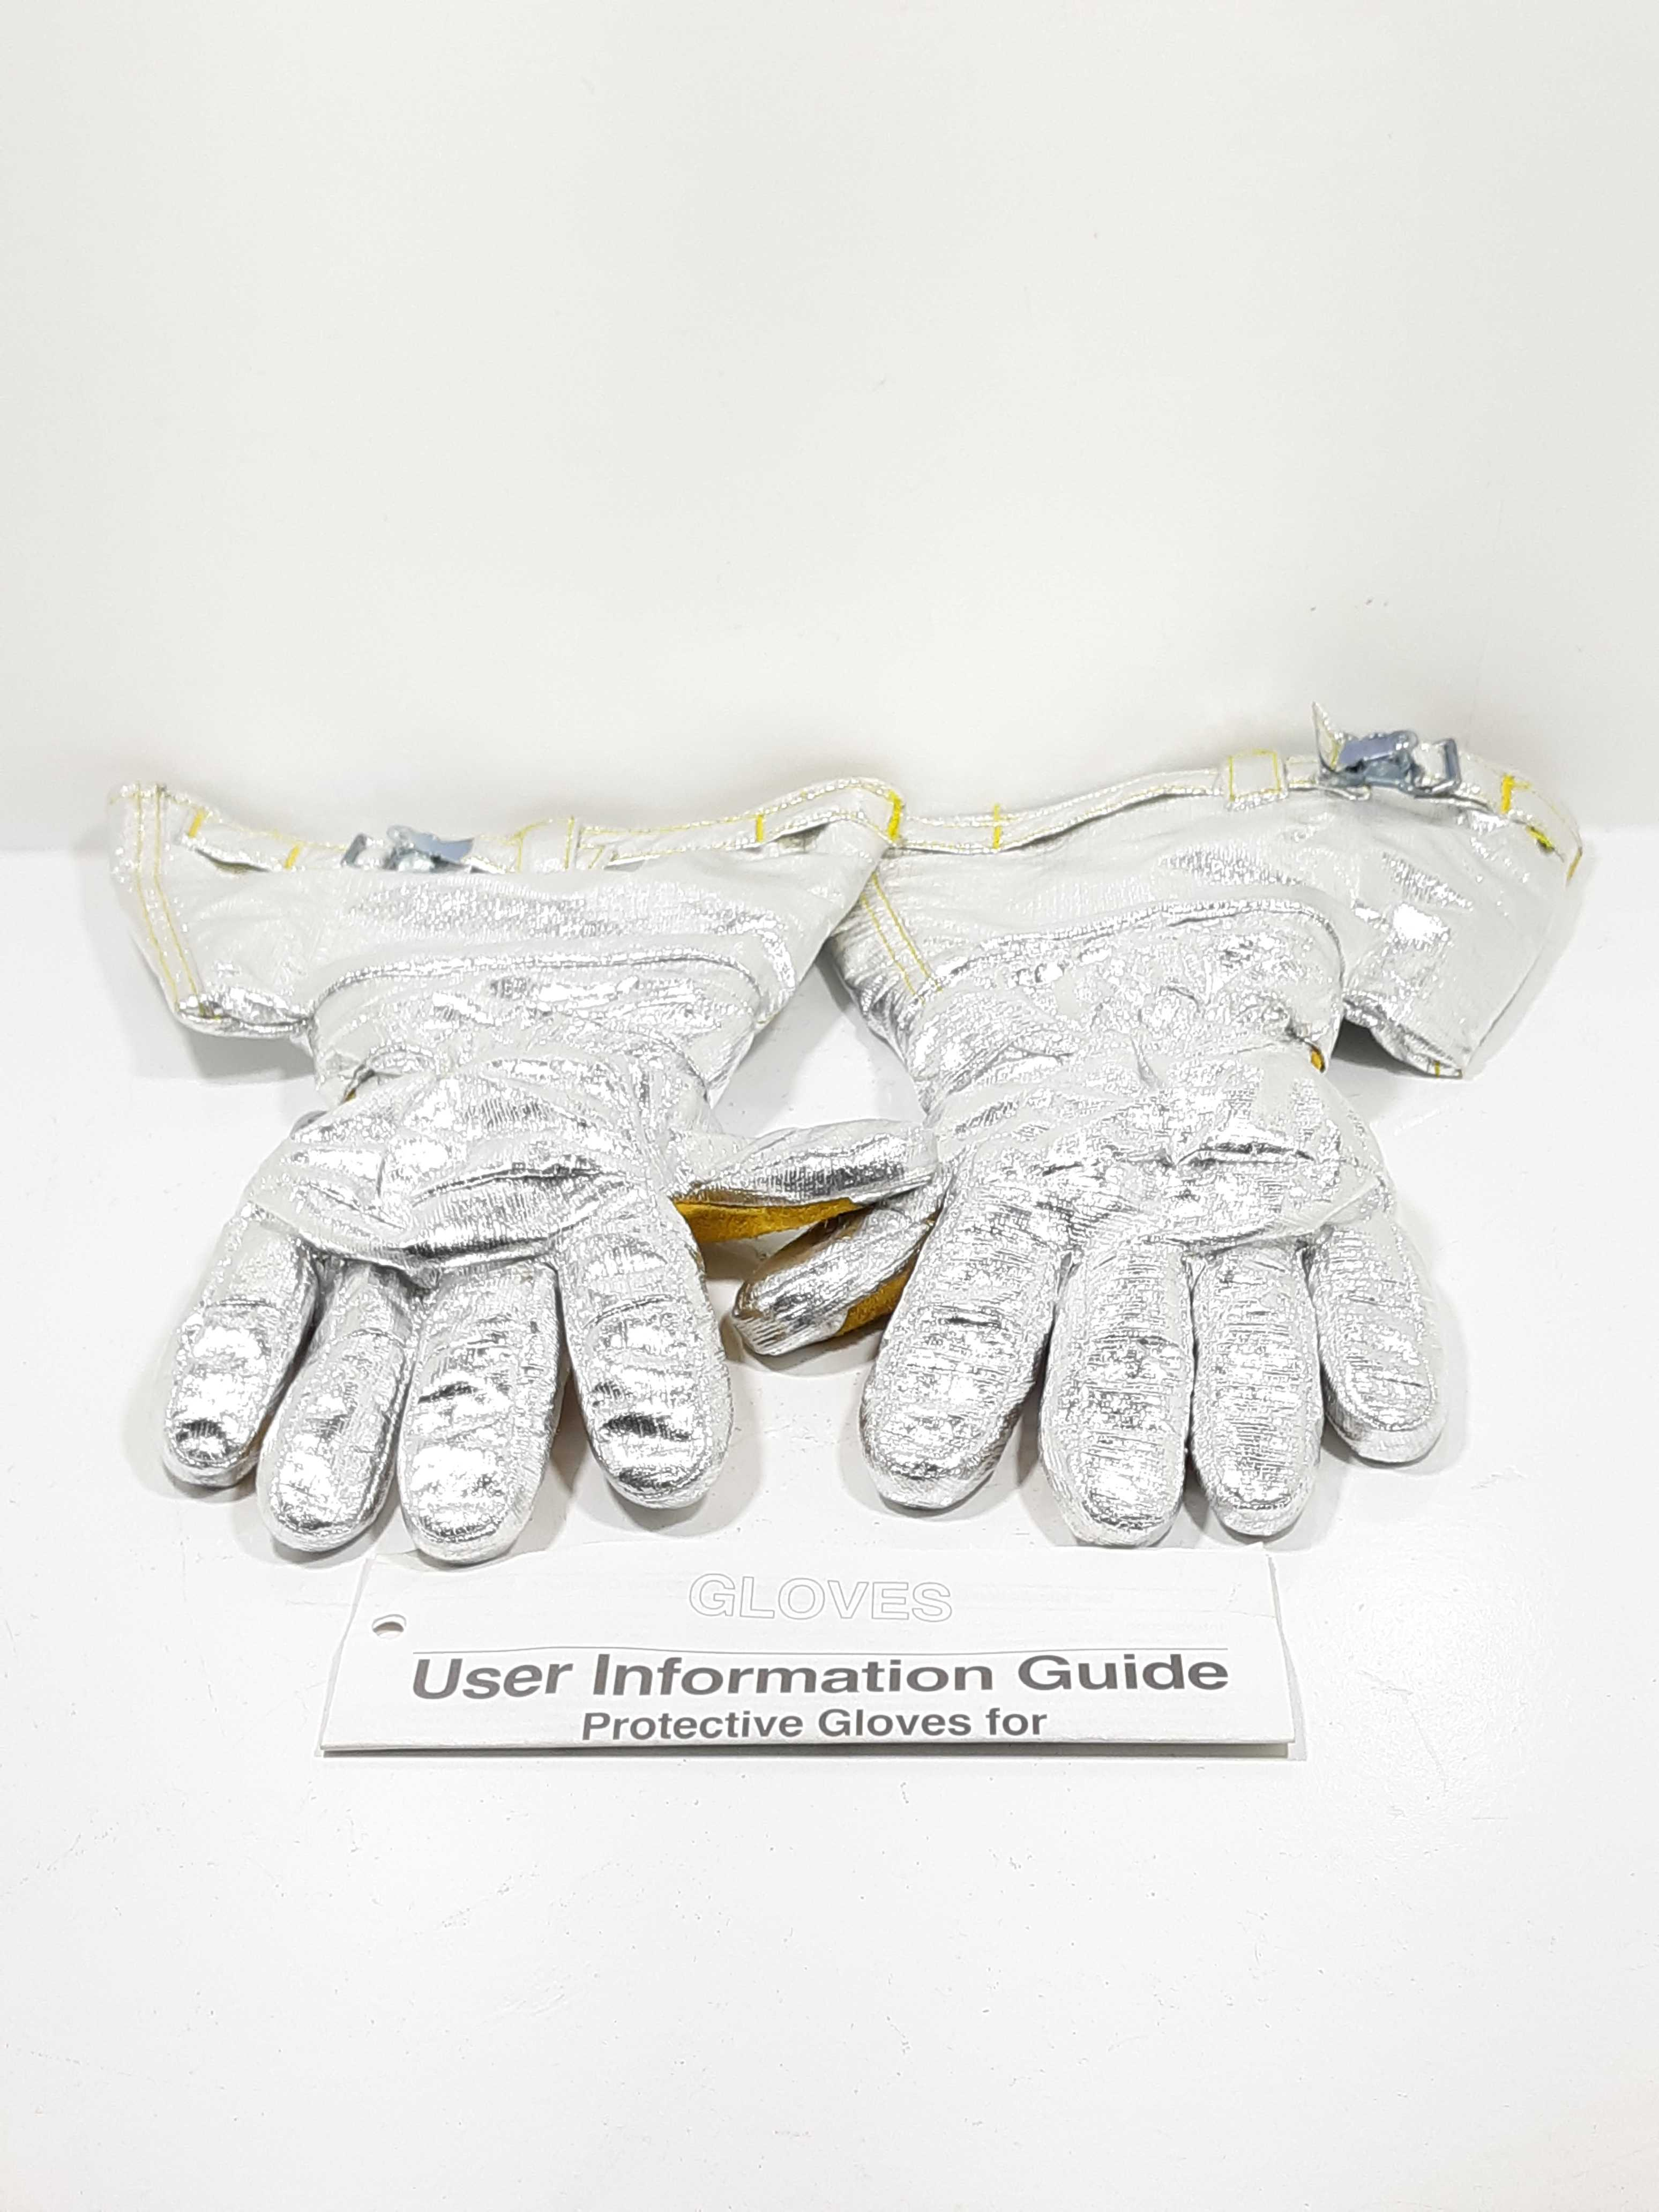 American Firewear GL-HNO-RGA-XL Aluminized Proximity Firefighting Gloves XL